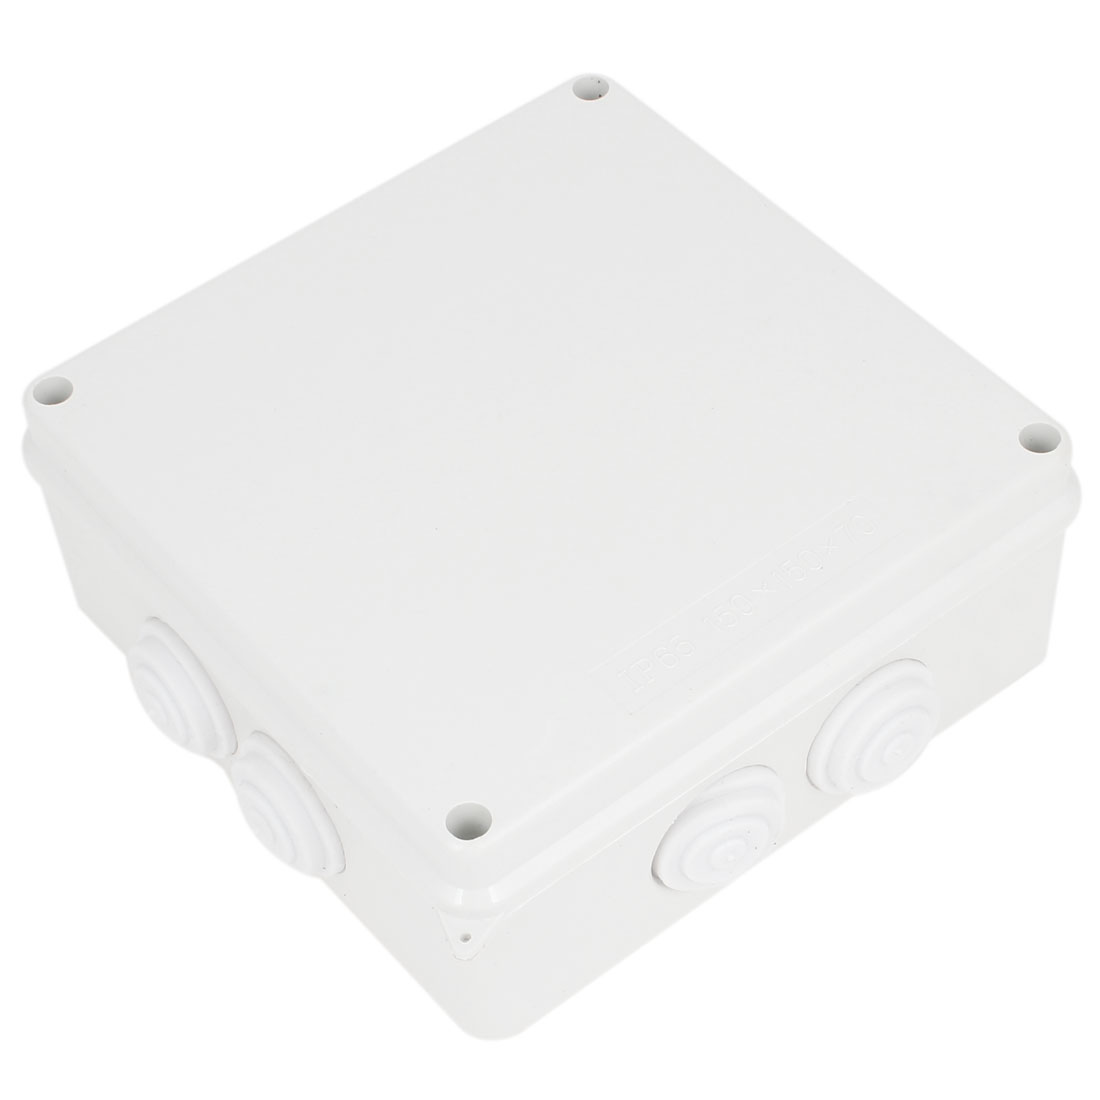 ABS Square Junction Box Plain Press on Lid 150x150x70mm